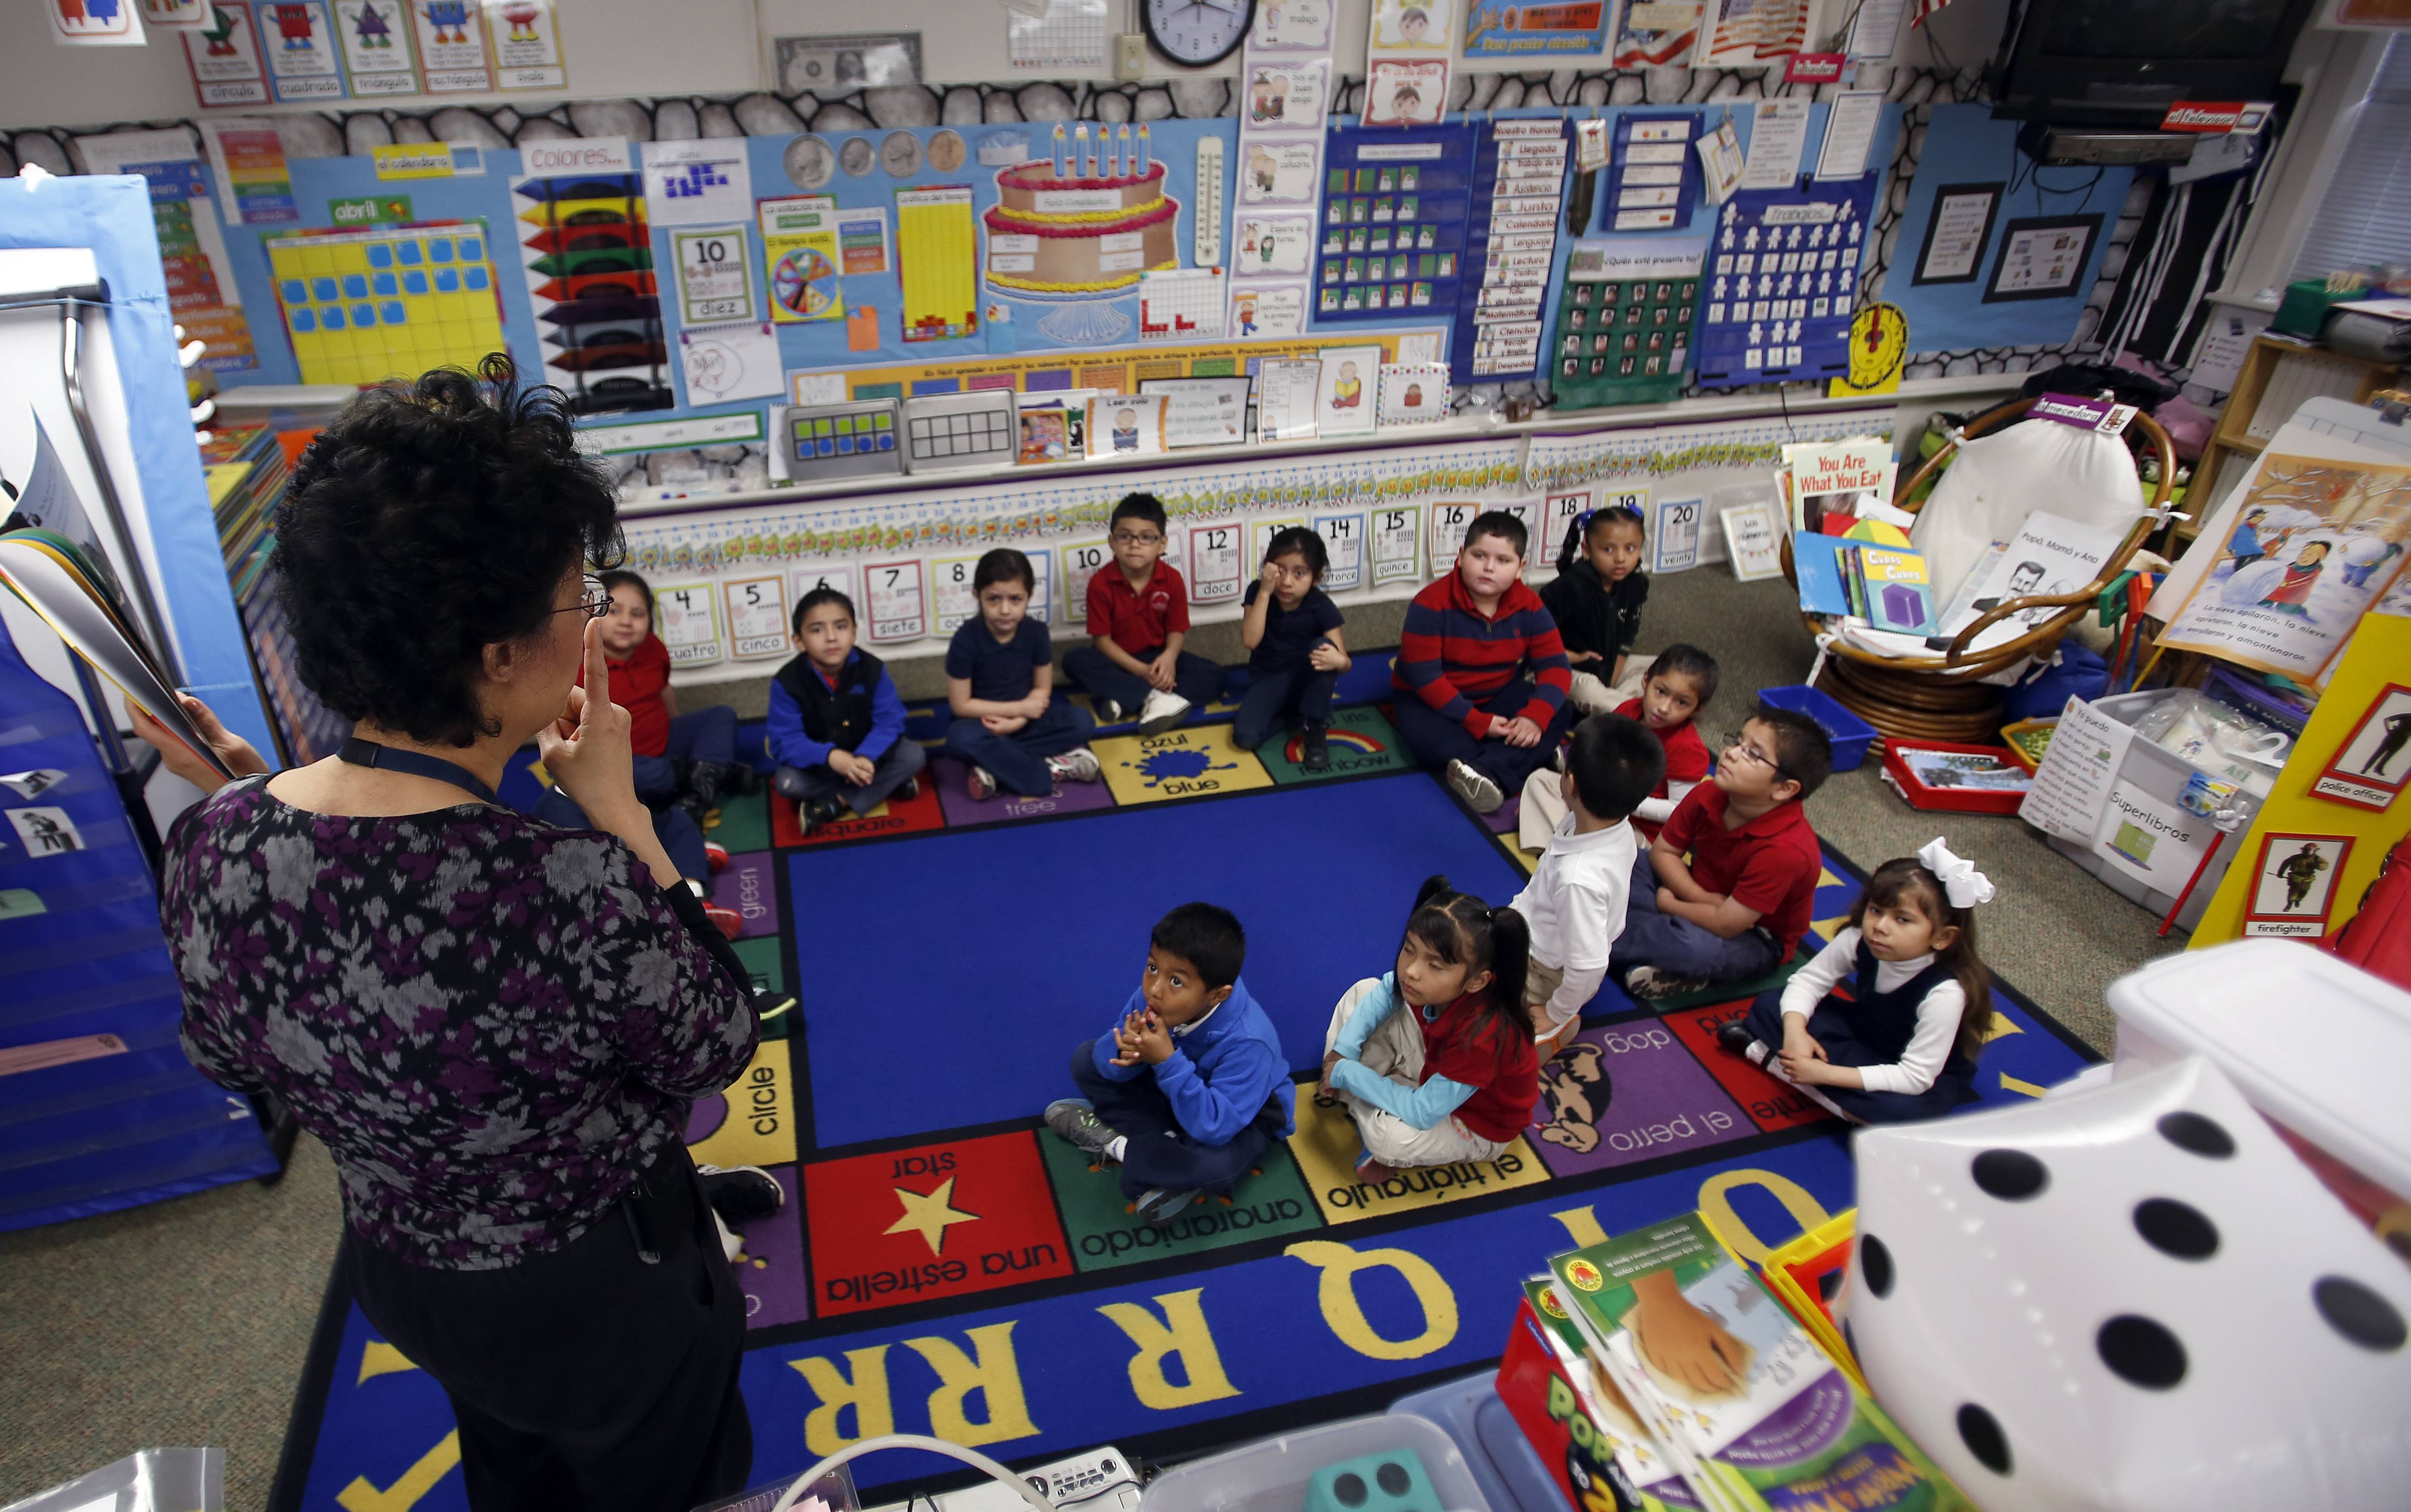 Dora Bodinet teaches kindergarten at McKinley Elementary School in Elgin, one of the Elgin Area School District U-46 schools that will benefit from about $2.4 million yearly in federal grants to expand access to full-day preschool services for 4-year-olds.